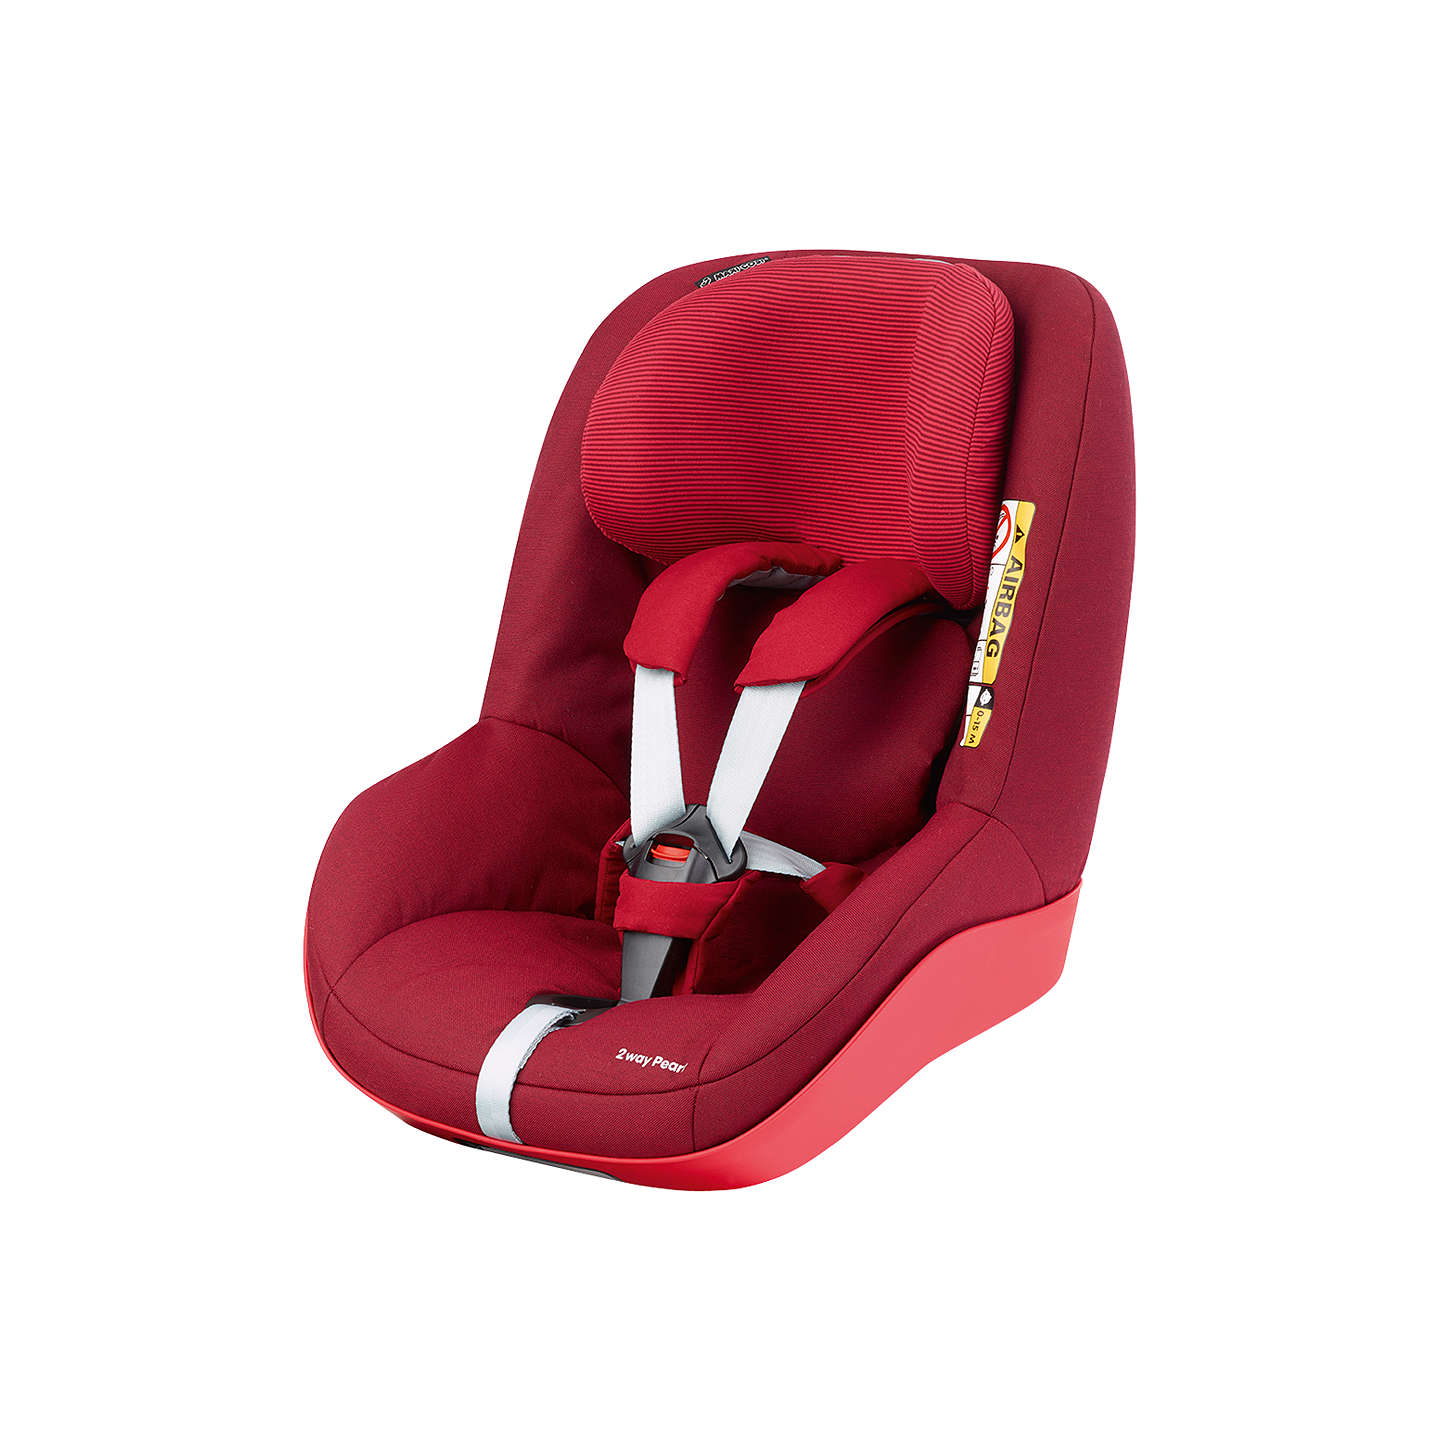 BuyMaxi-Cosi 2wayPearl i-Size Group 1 Car Seat, Robin Red Online at johnlewis.com